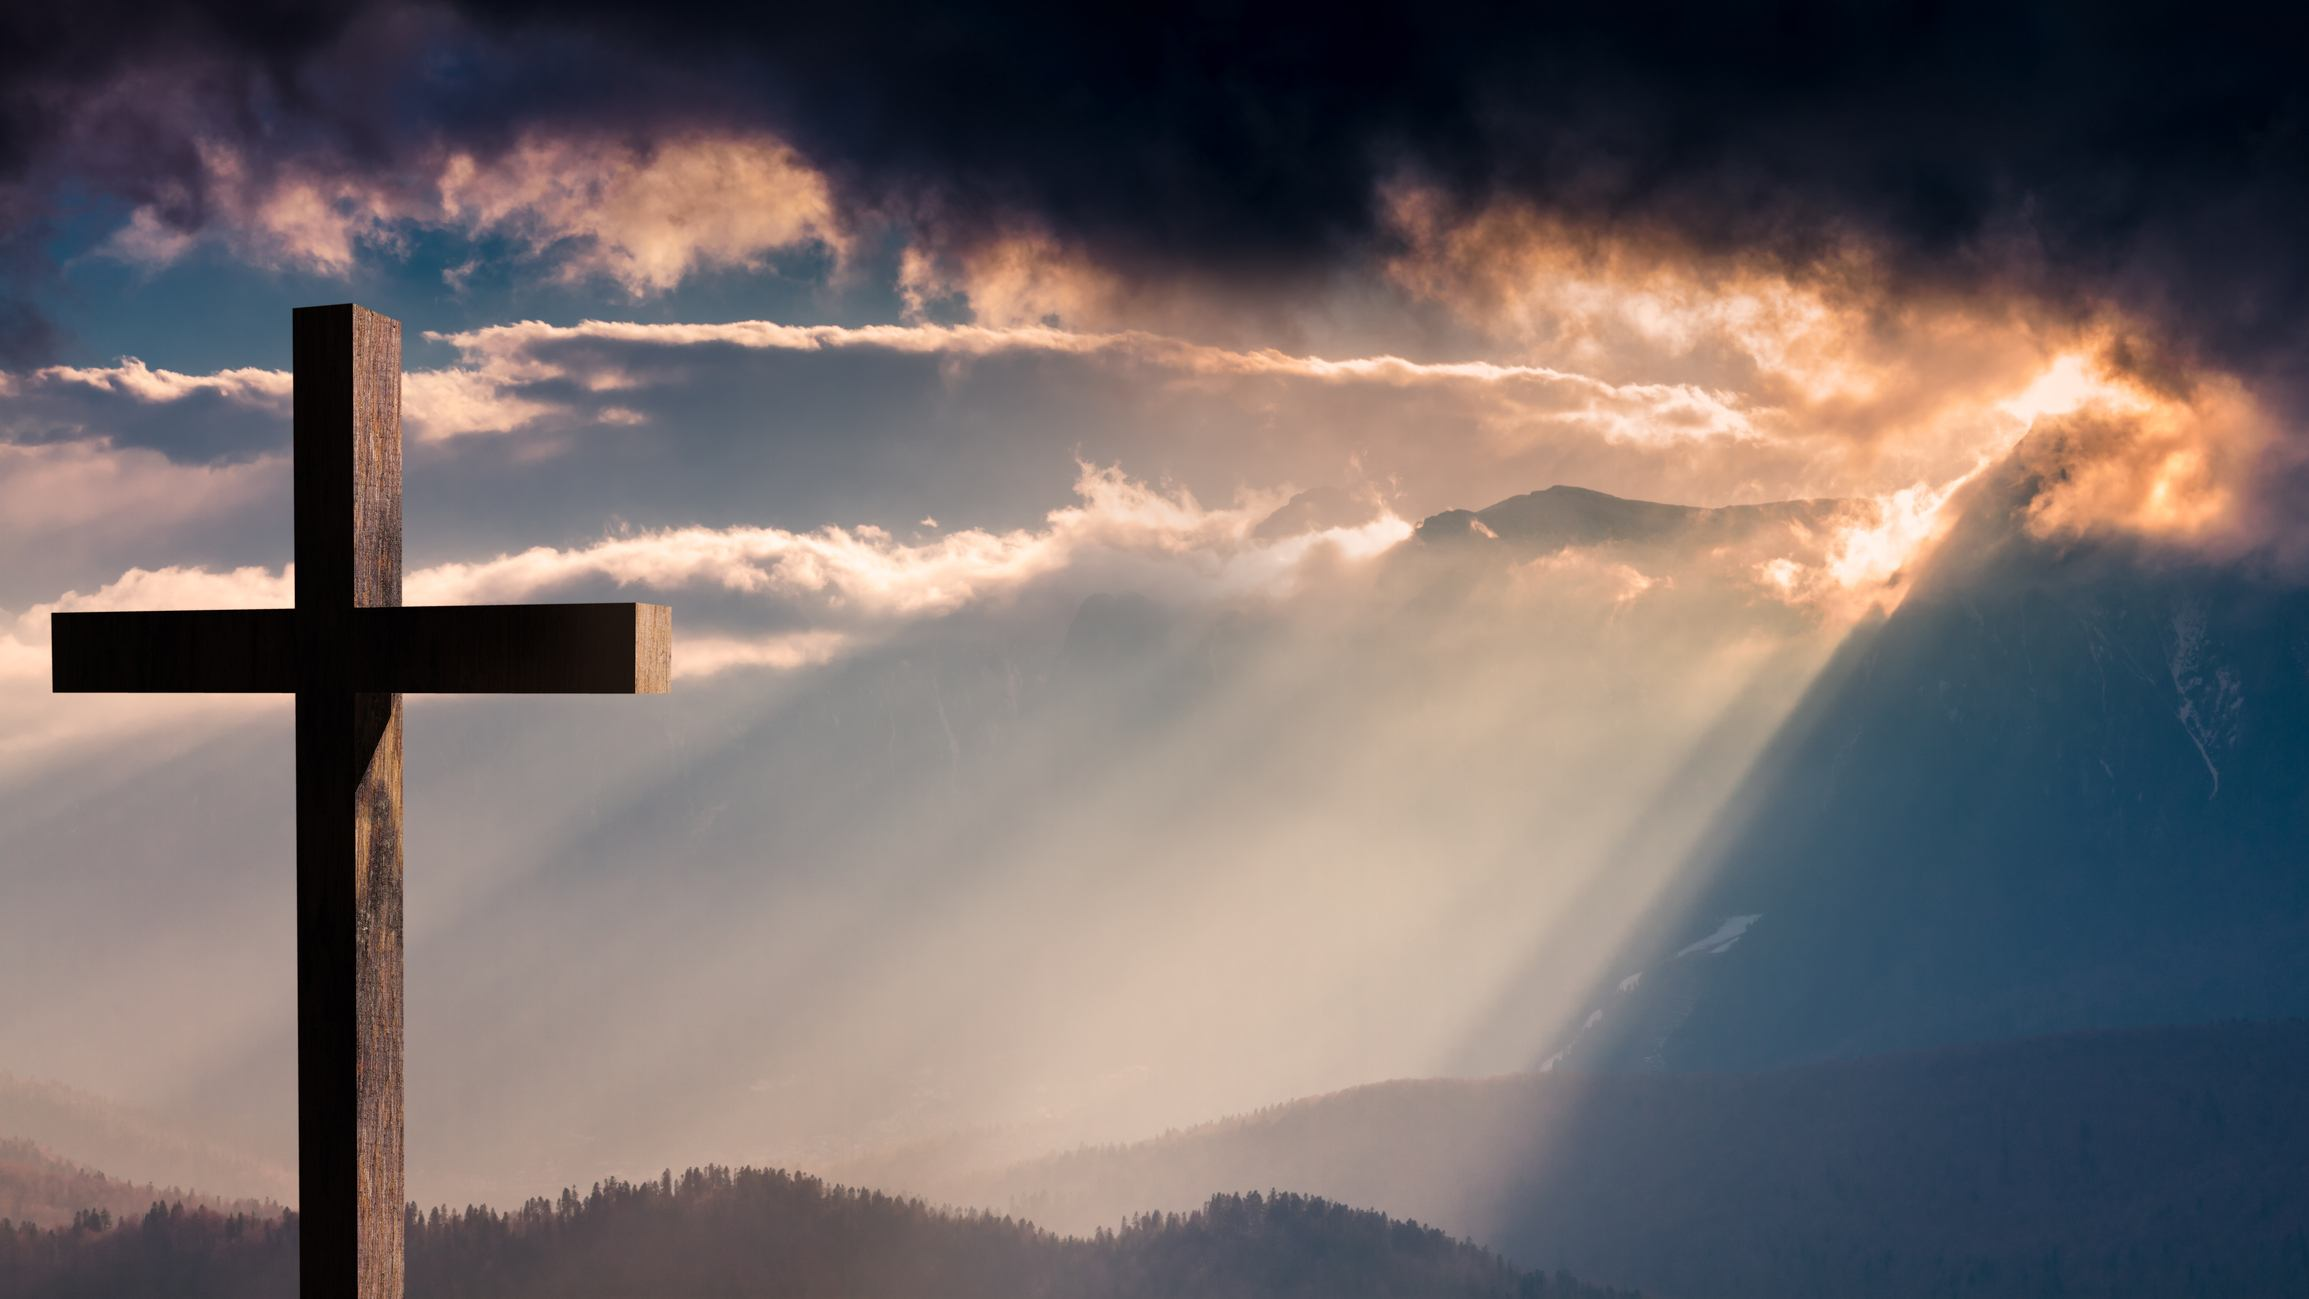 Jesus Christ wooden cross on a dramatic, colorful sunset